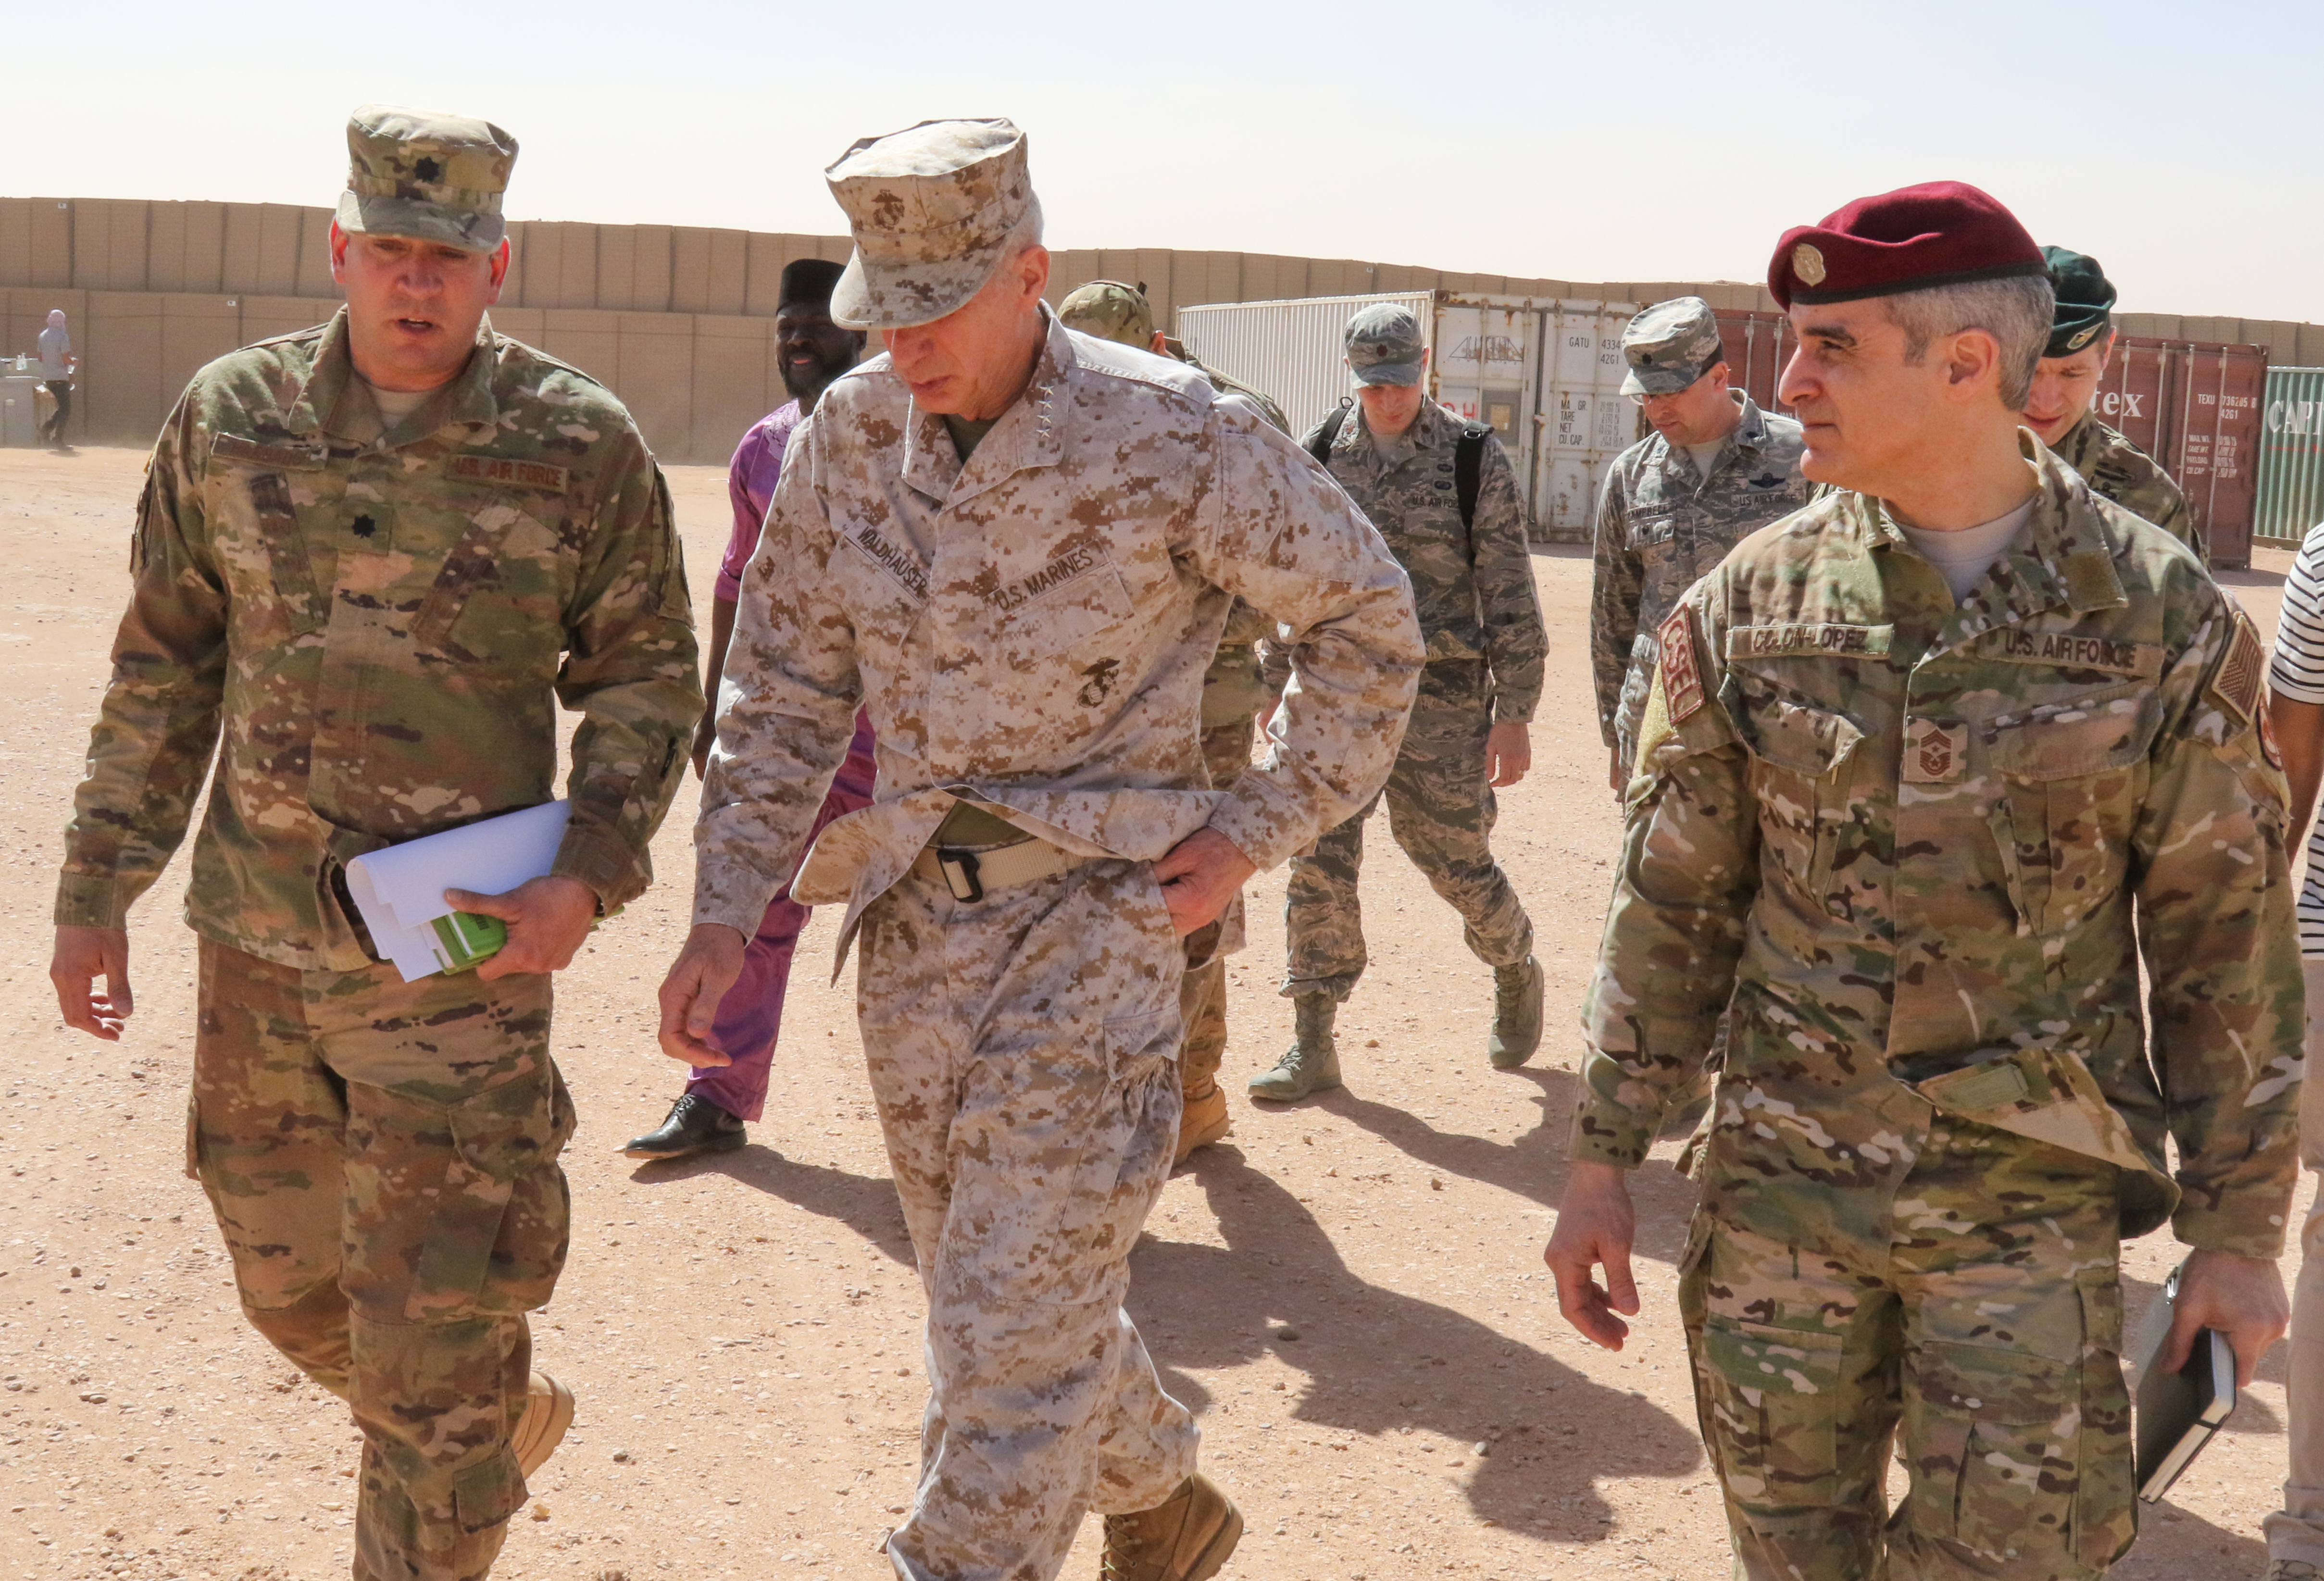 U.S. Marine Corps Gen. Thomas D. Waldhauser, commander, U.S. Africa Command, and U.S. Air Force Chief Master Sgt. Ramon Colon-Lopez, AFRICOM command senior enlisted leader, meet with Air Base 201 leadership during a visit to Agadez, Niger Jan. 25, 2018.